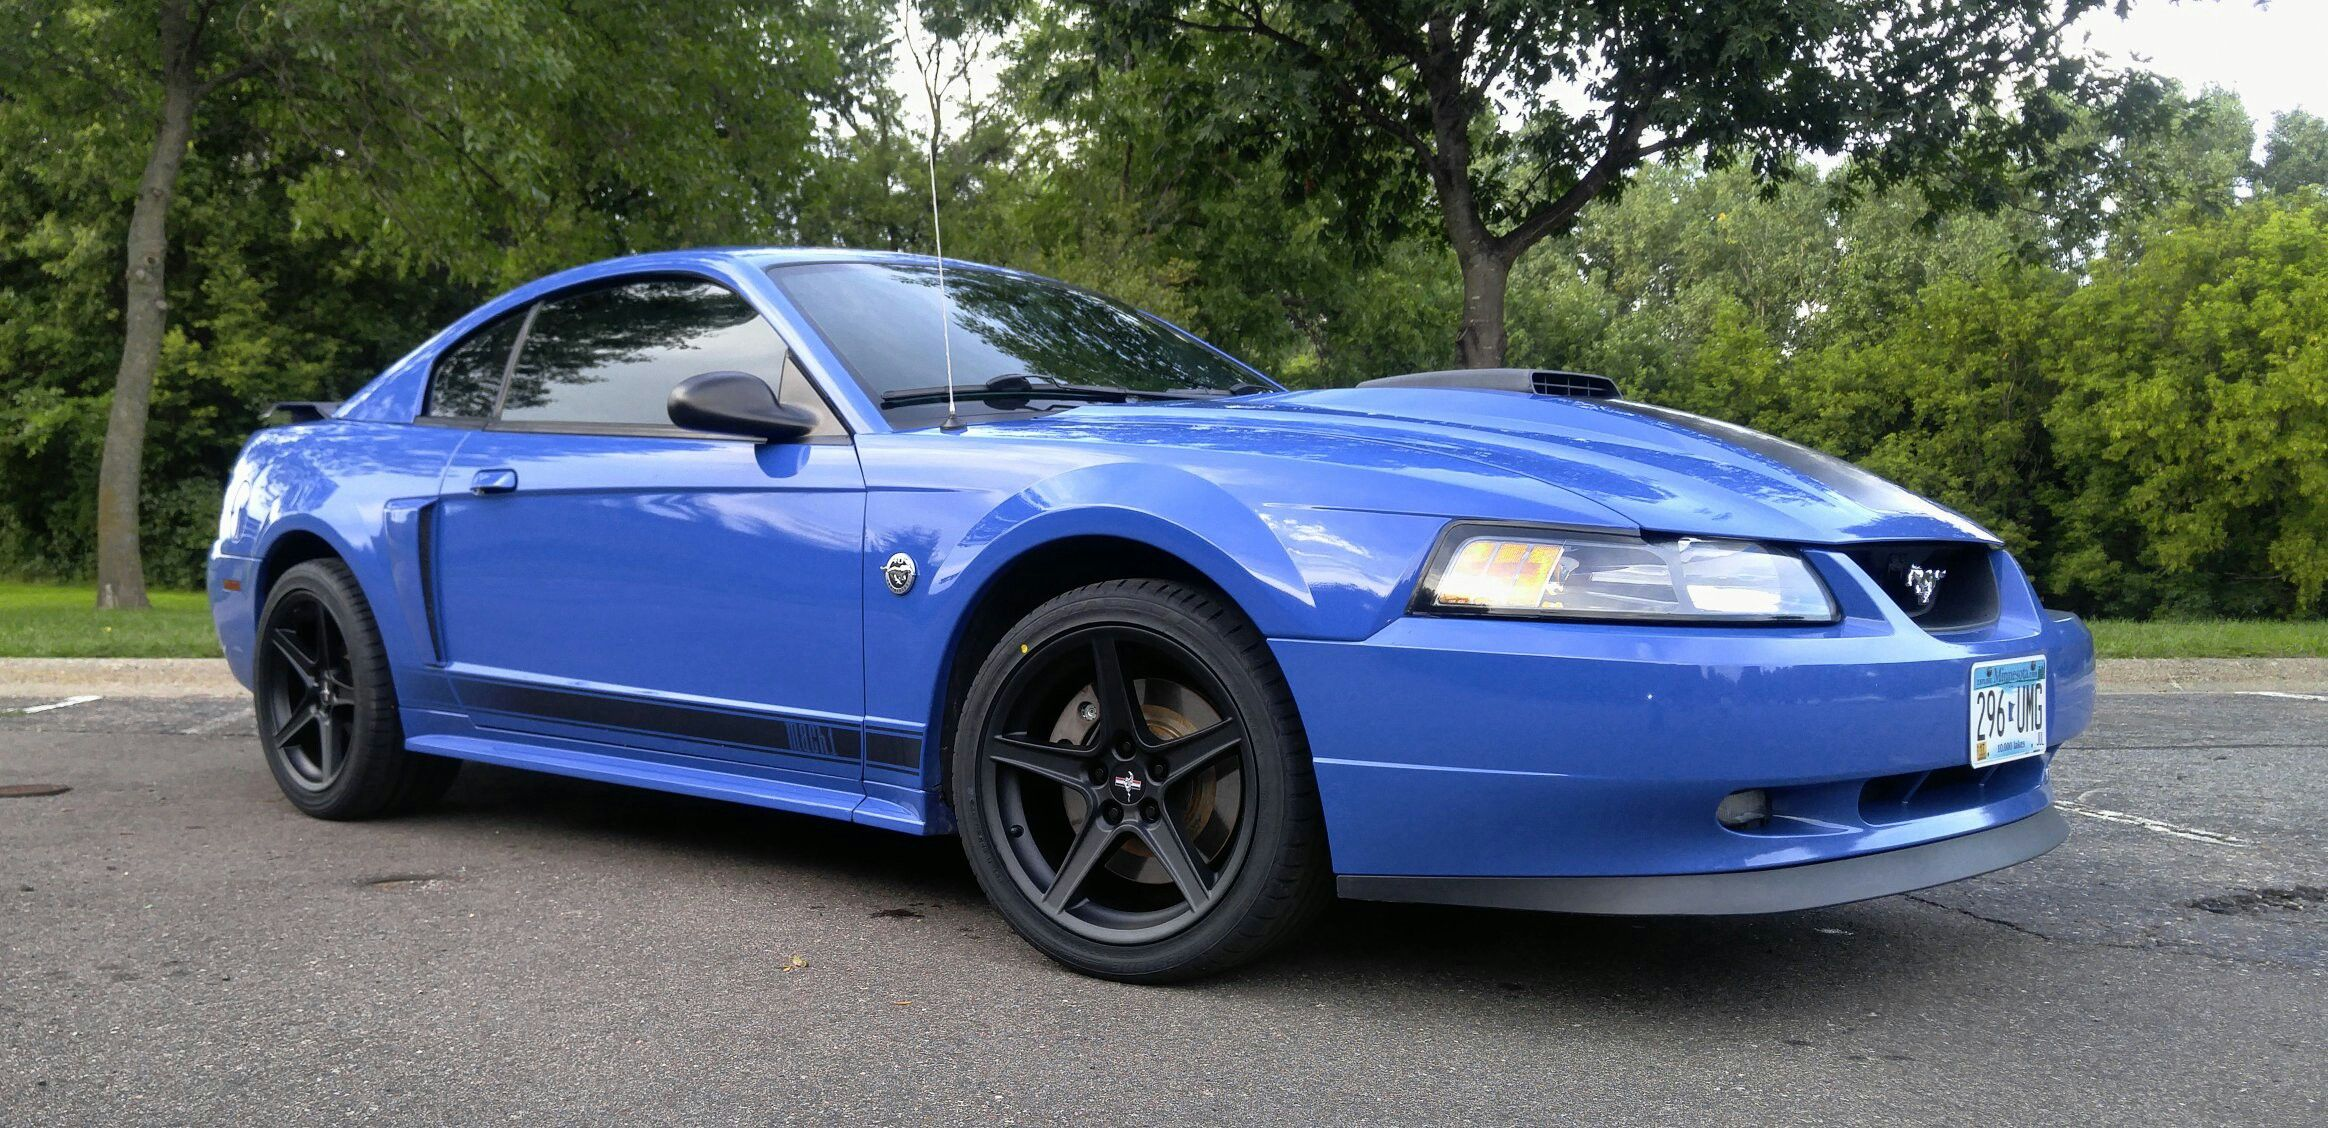 I finally got my hands on a mach 1 2004 azure blue here is my first set of pictures after my initial changes to the car black saleen wheels mustang vinyl